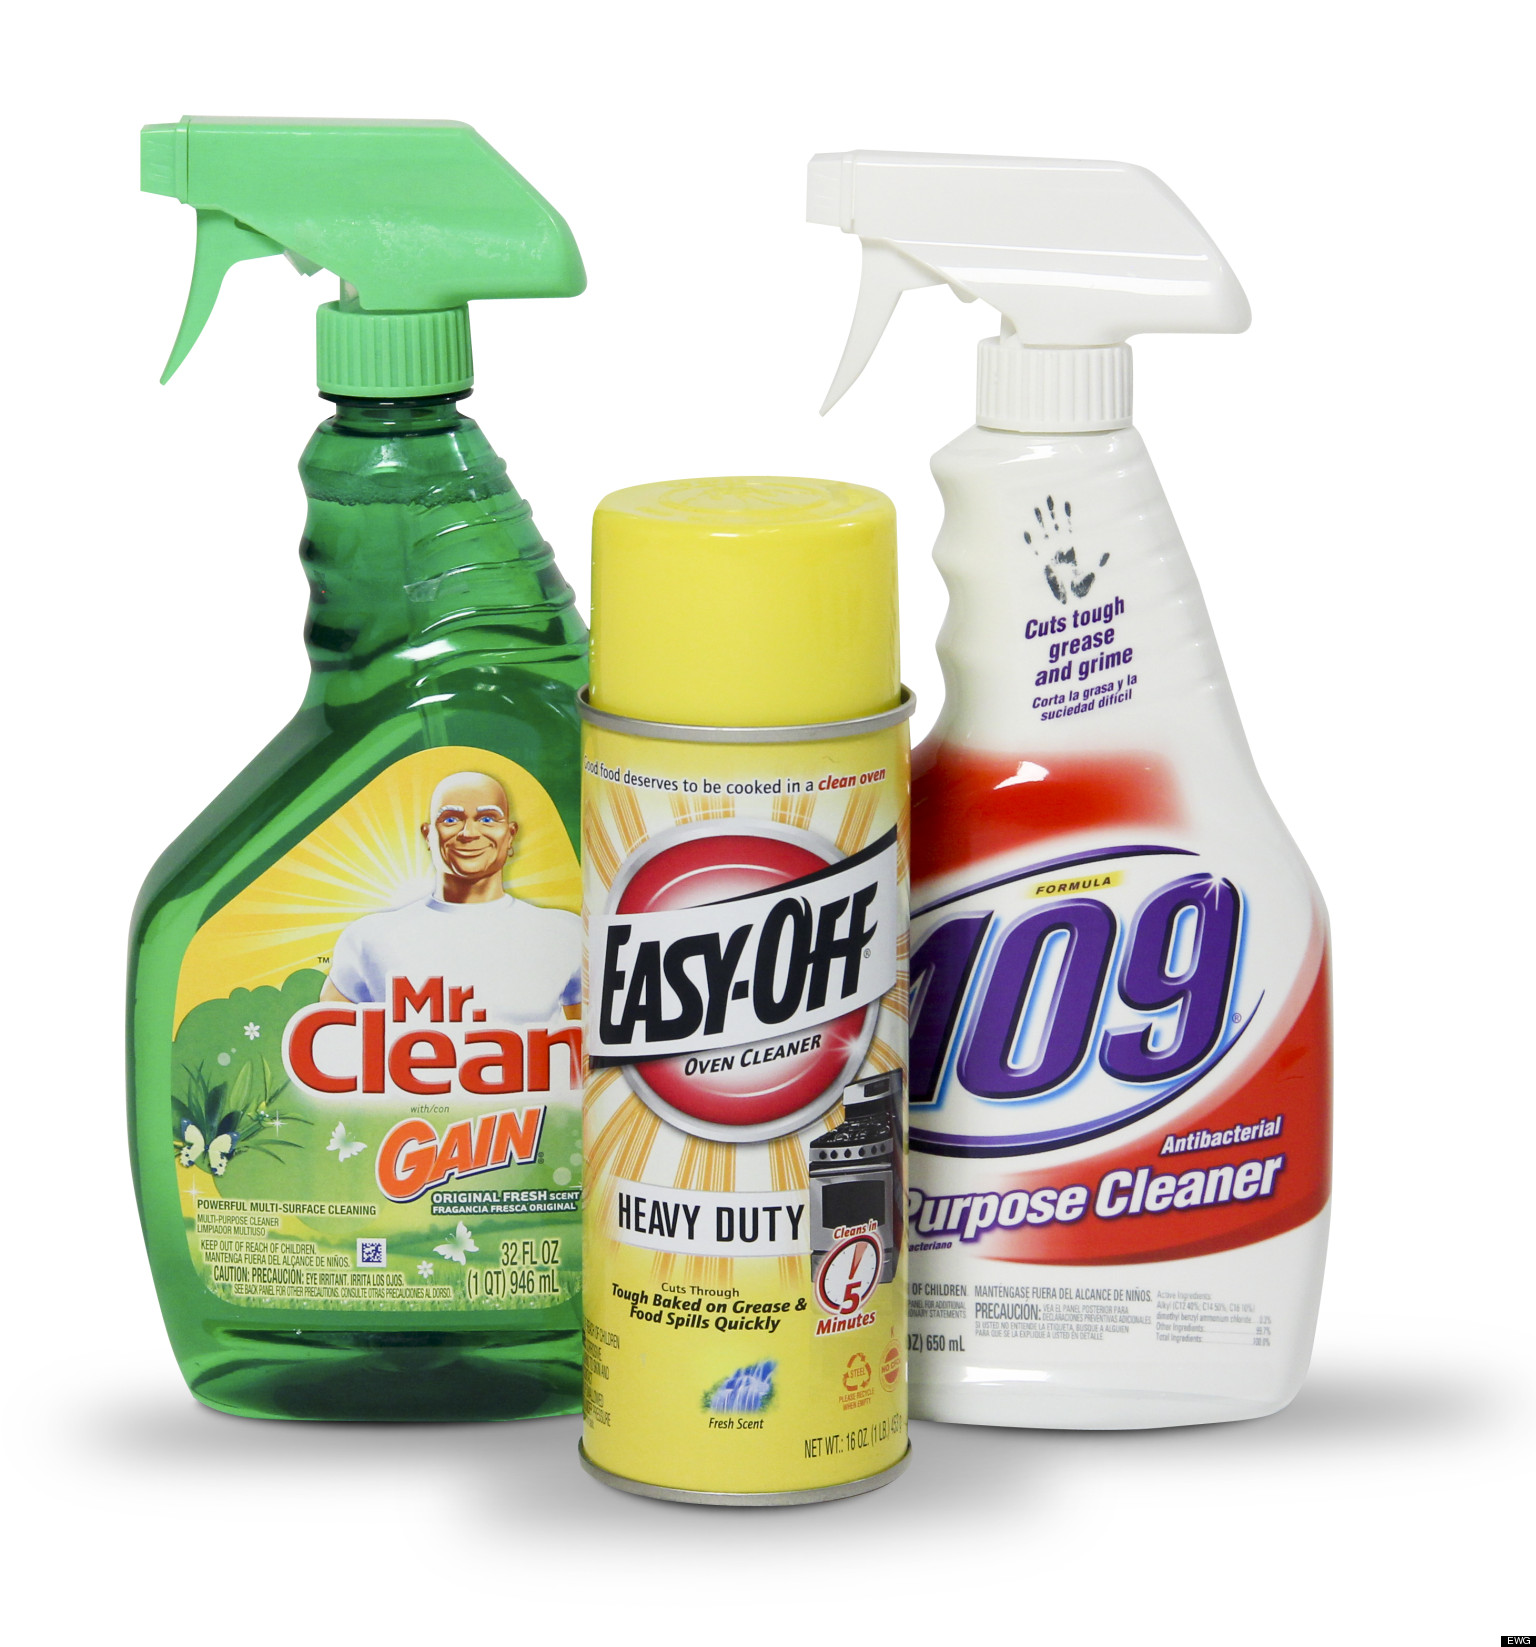 Worst Cleaners: EWG's List Of Most Harmful Cleaning